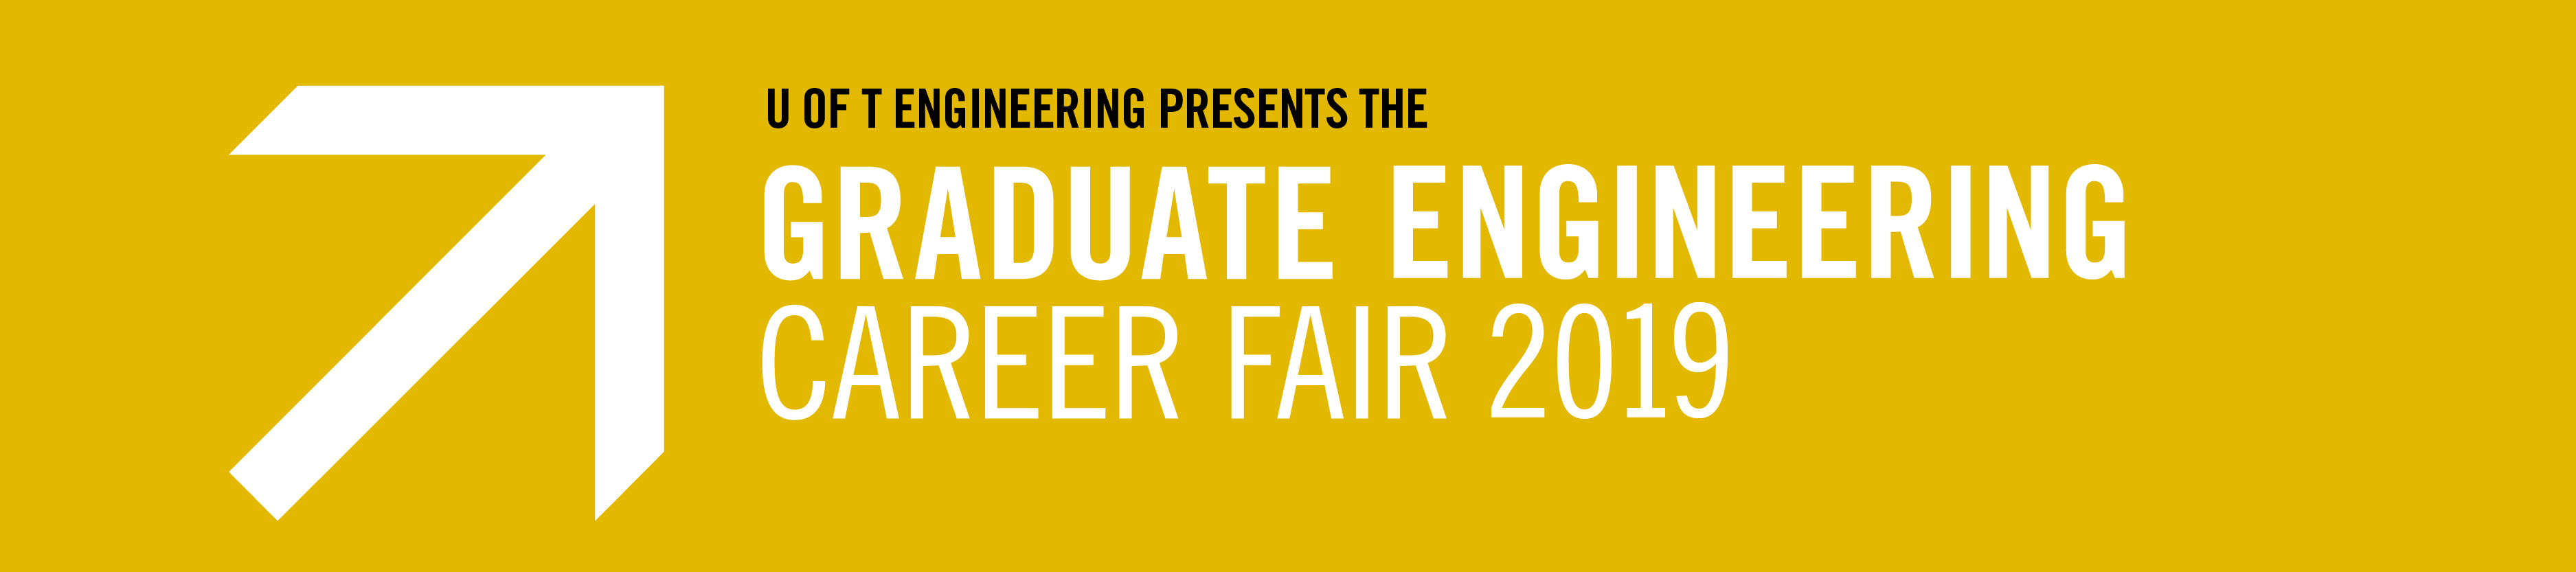 Graduate Engineering Career Fair @ Exam Centre